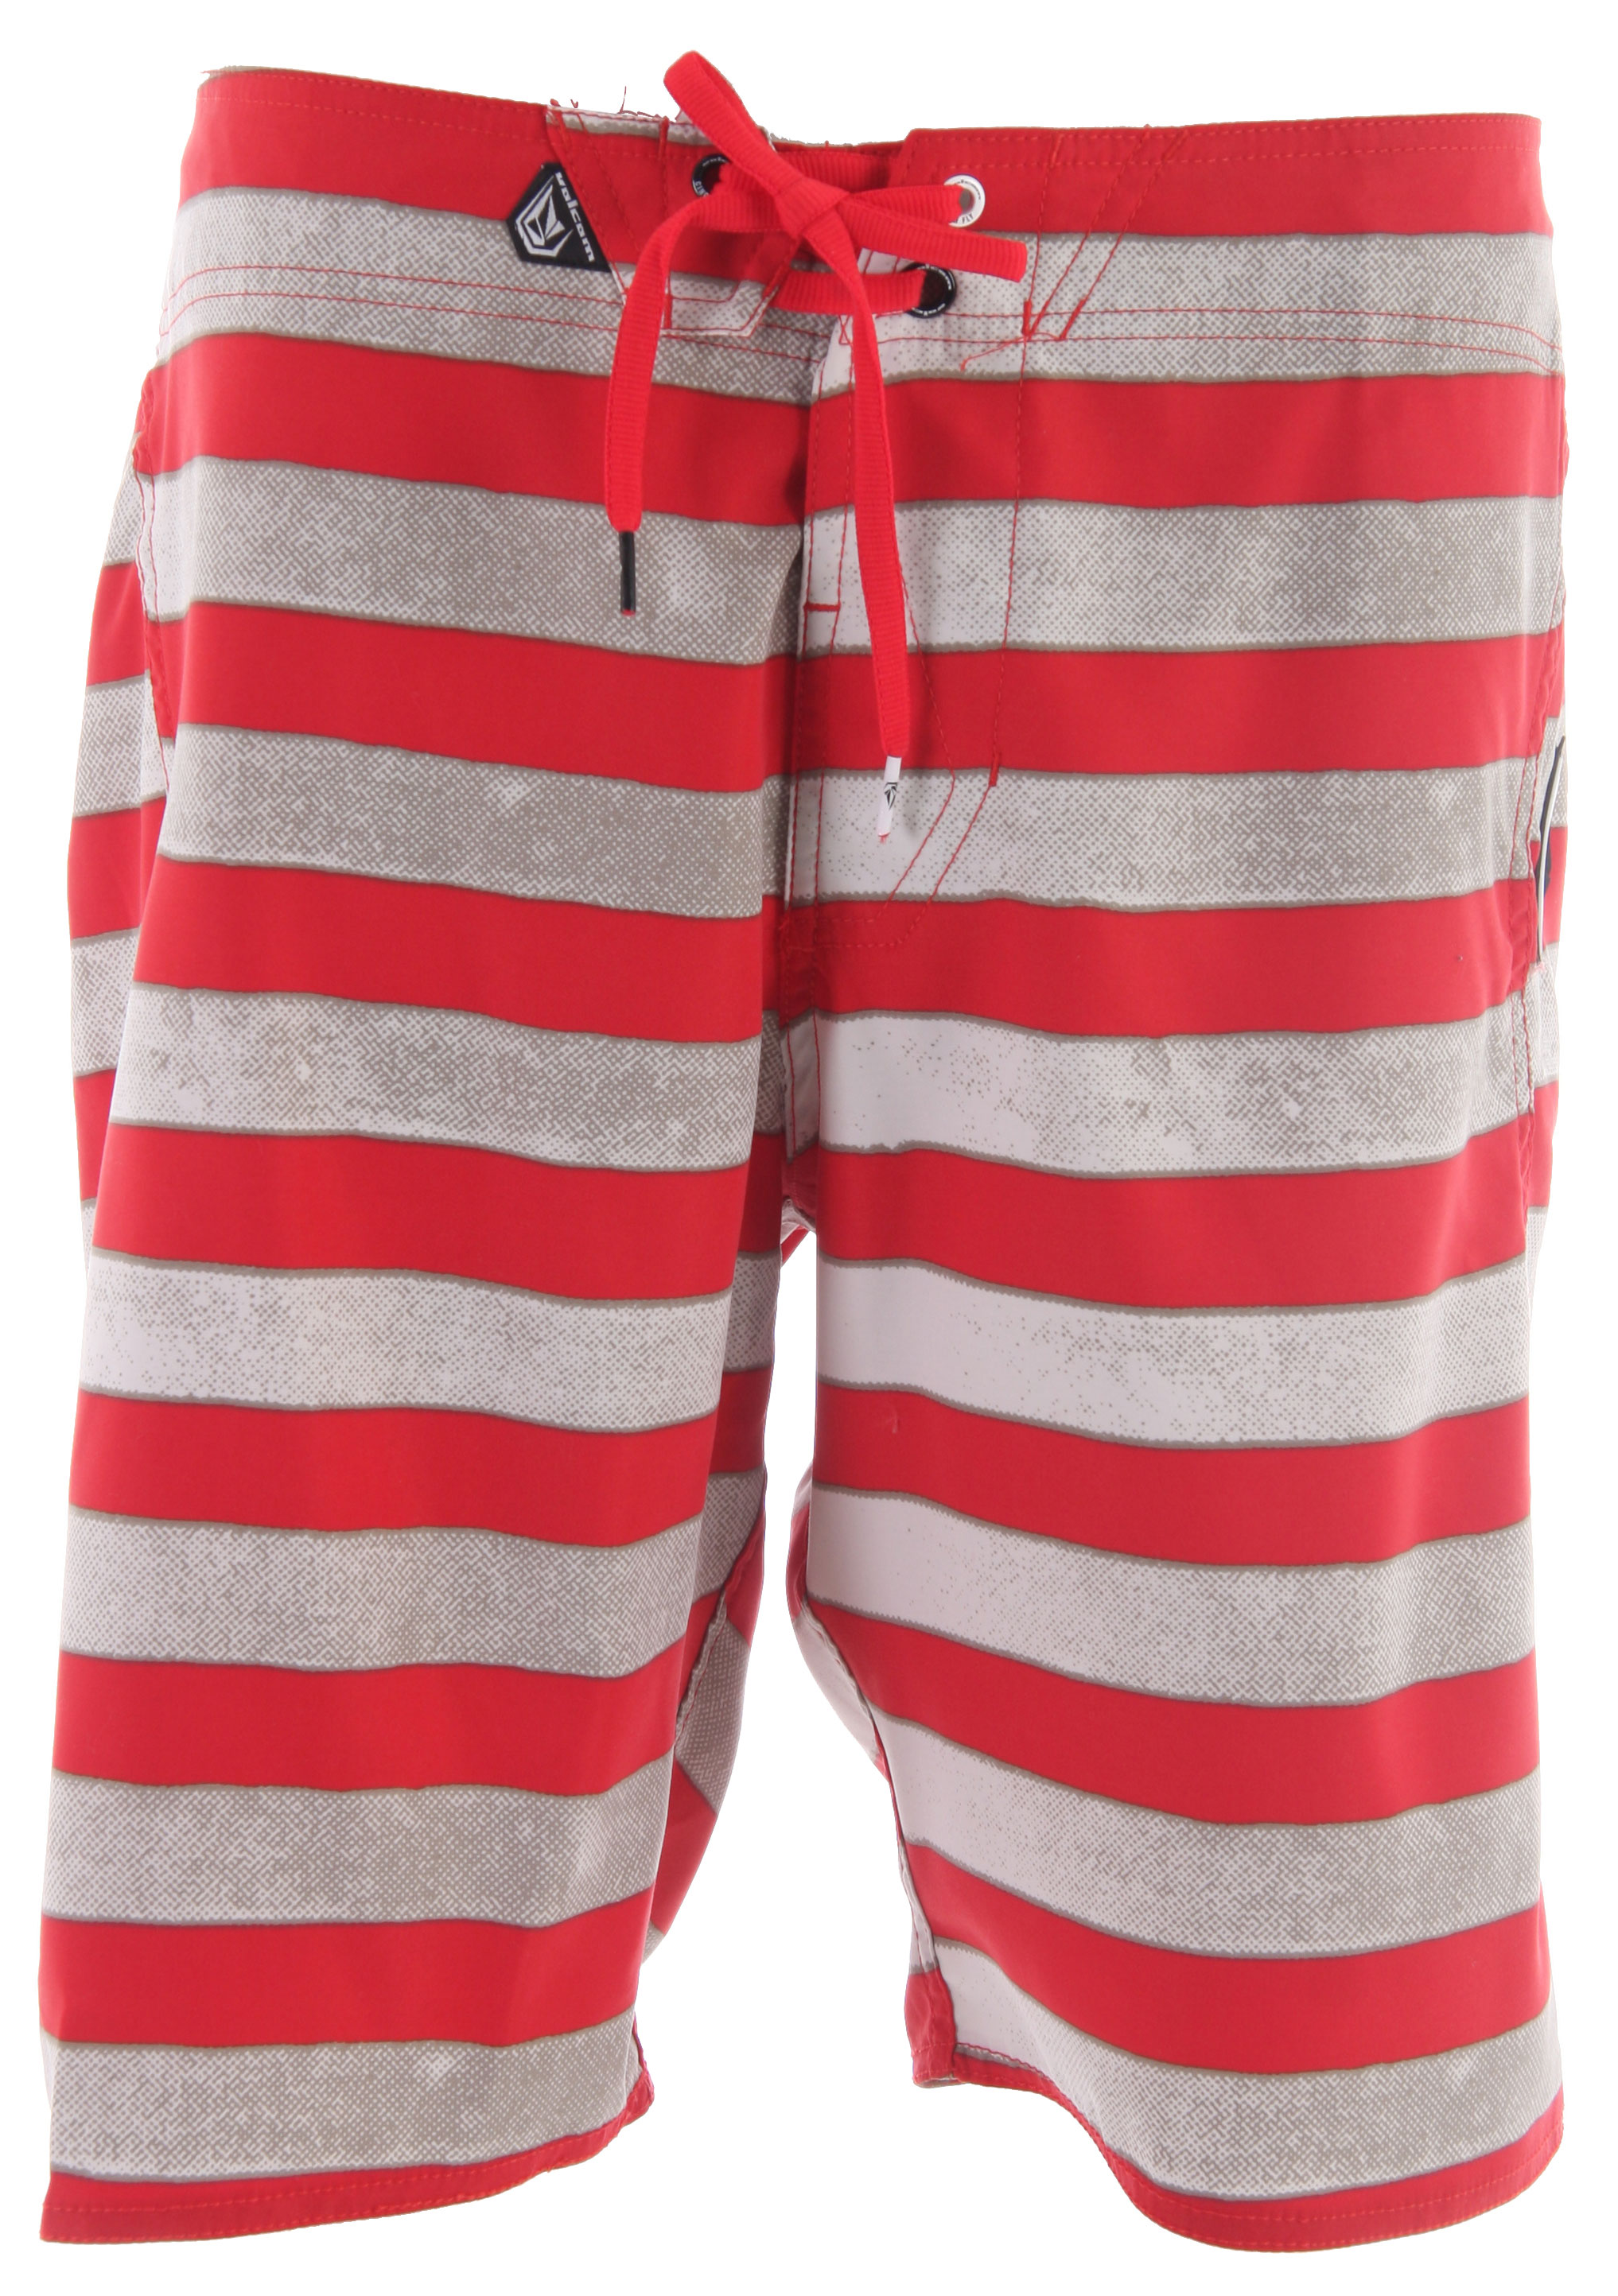 "Surf Key Features of the Volcom Maguro Stripe Boardshorts: 20"" Outseam Boardshort 2 Way Stretch Back Flap Pocket Stripe print Rubber stone Embroidered Eyelet on Pocket Cinch Fly Technology 100% Polyester 2 Way Mechanical Stretch. - $28.95"